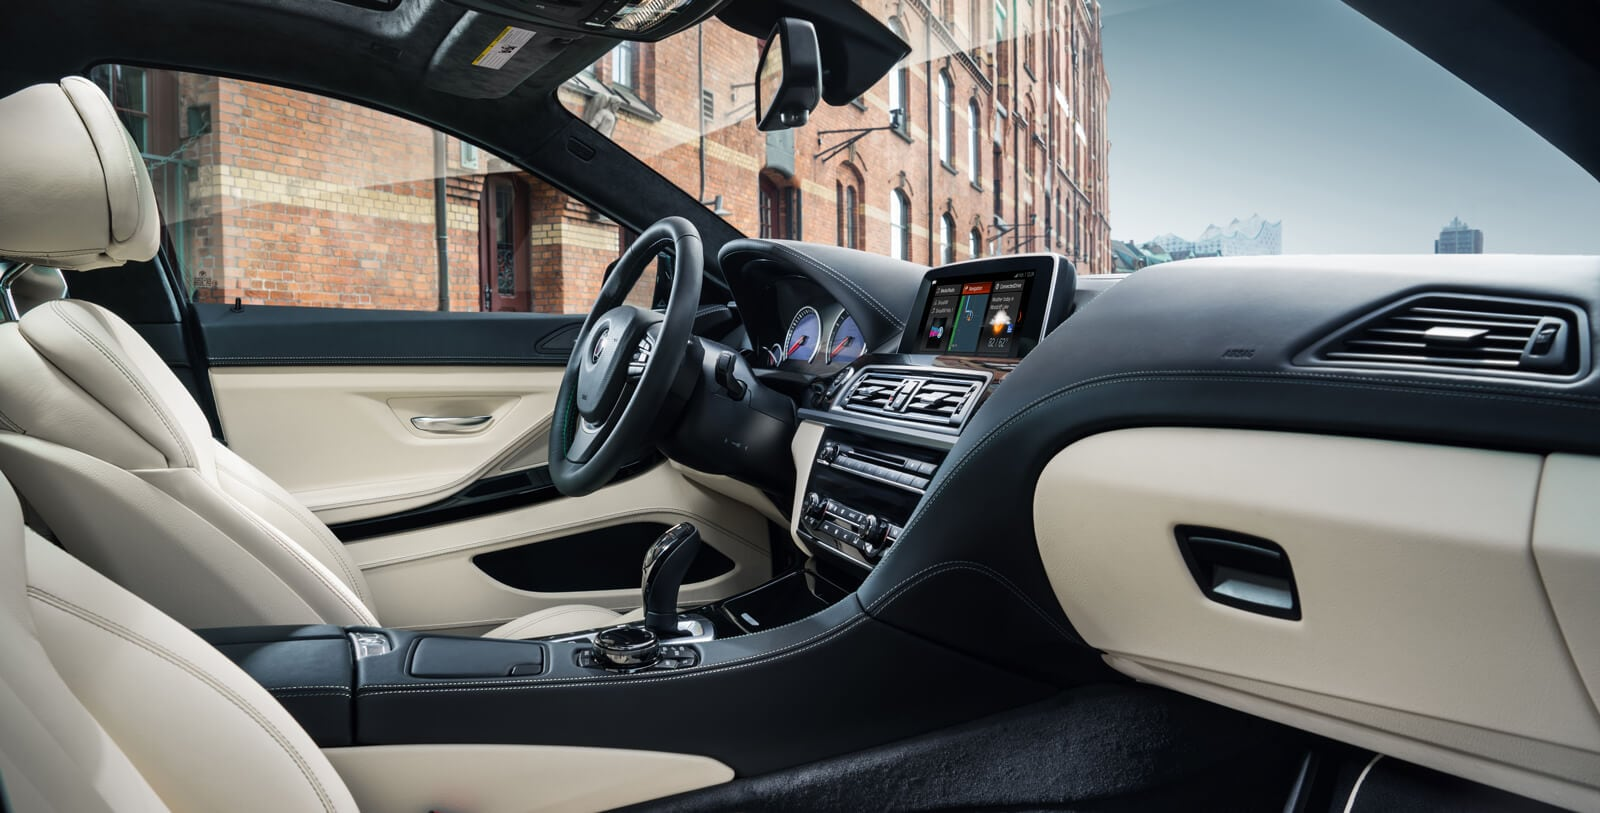 Interior of a 2019 BMW 6 Series showing leather upholstery